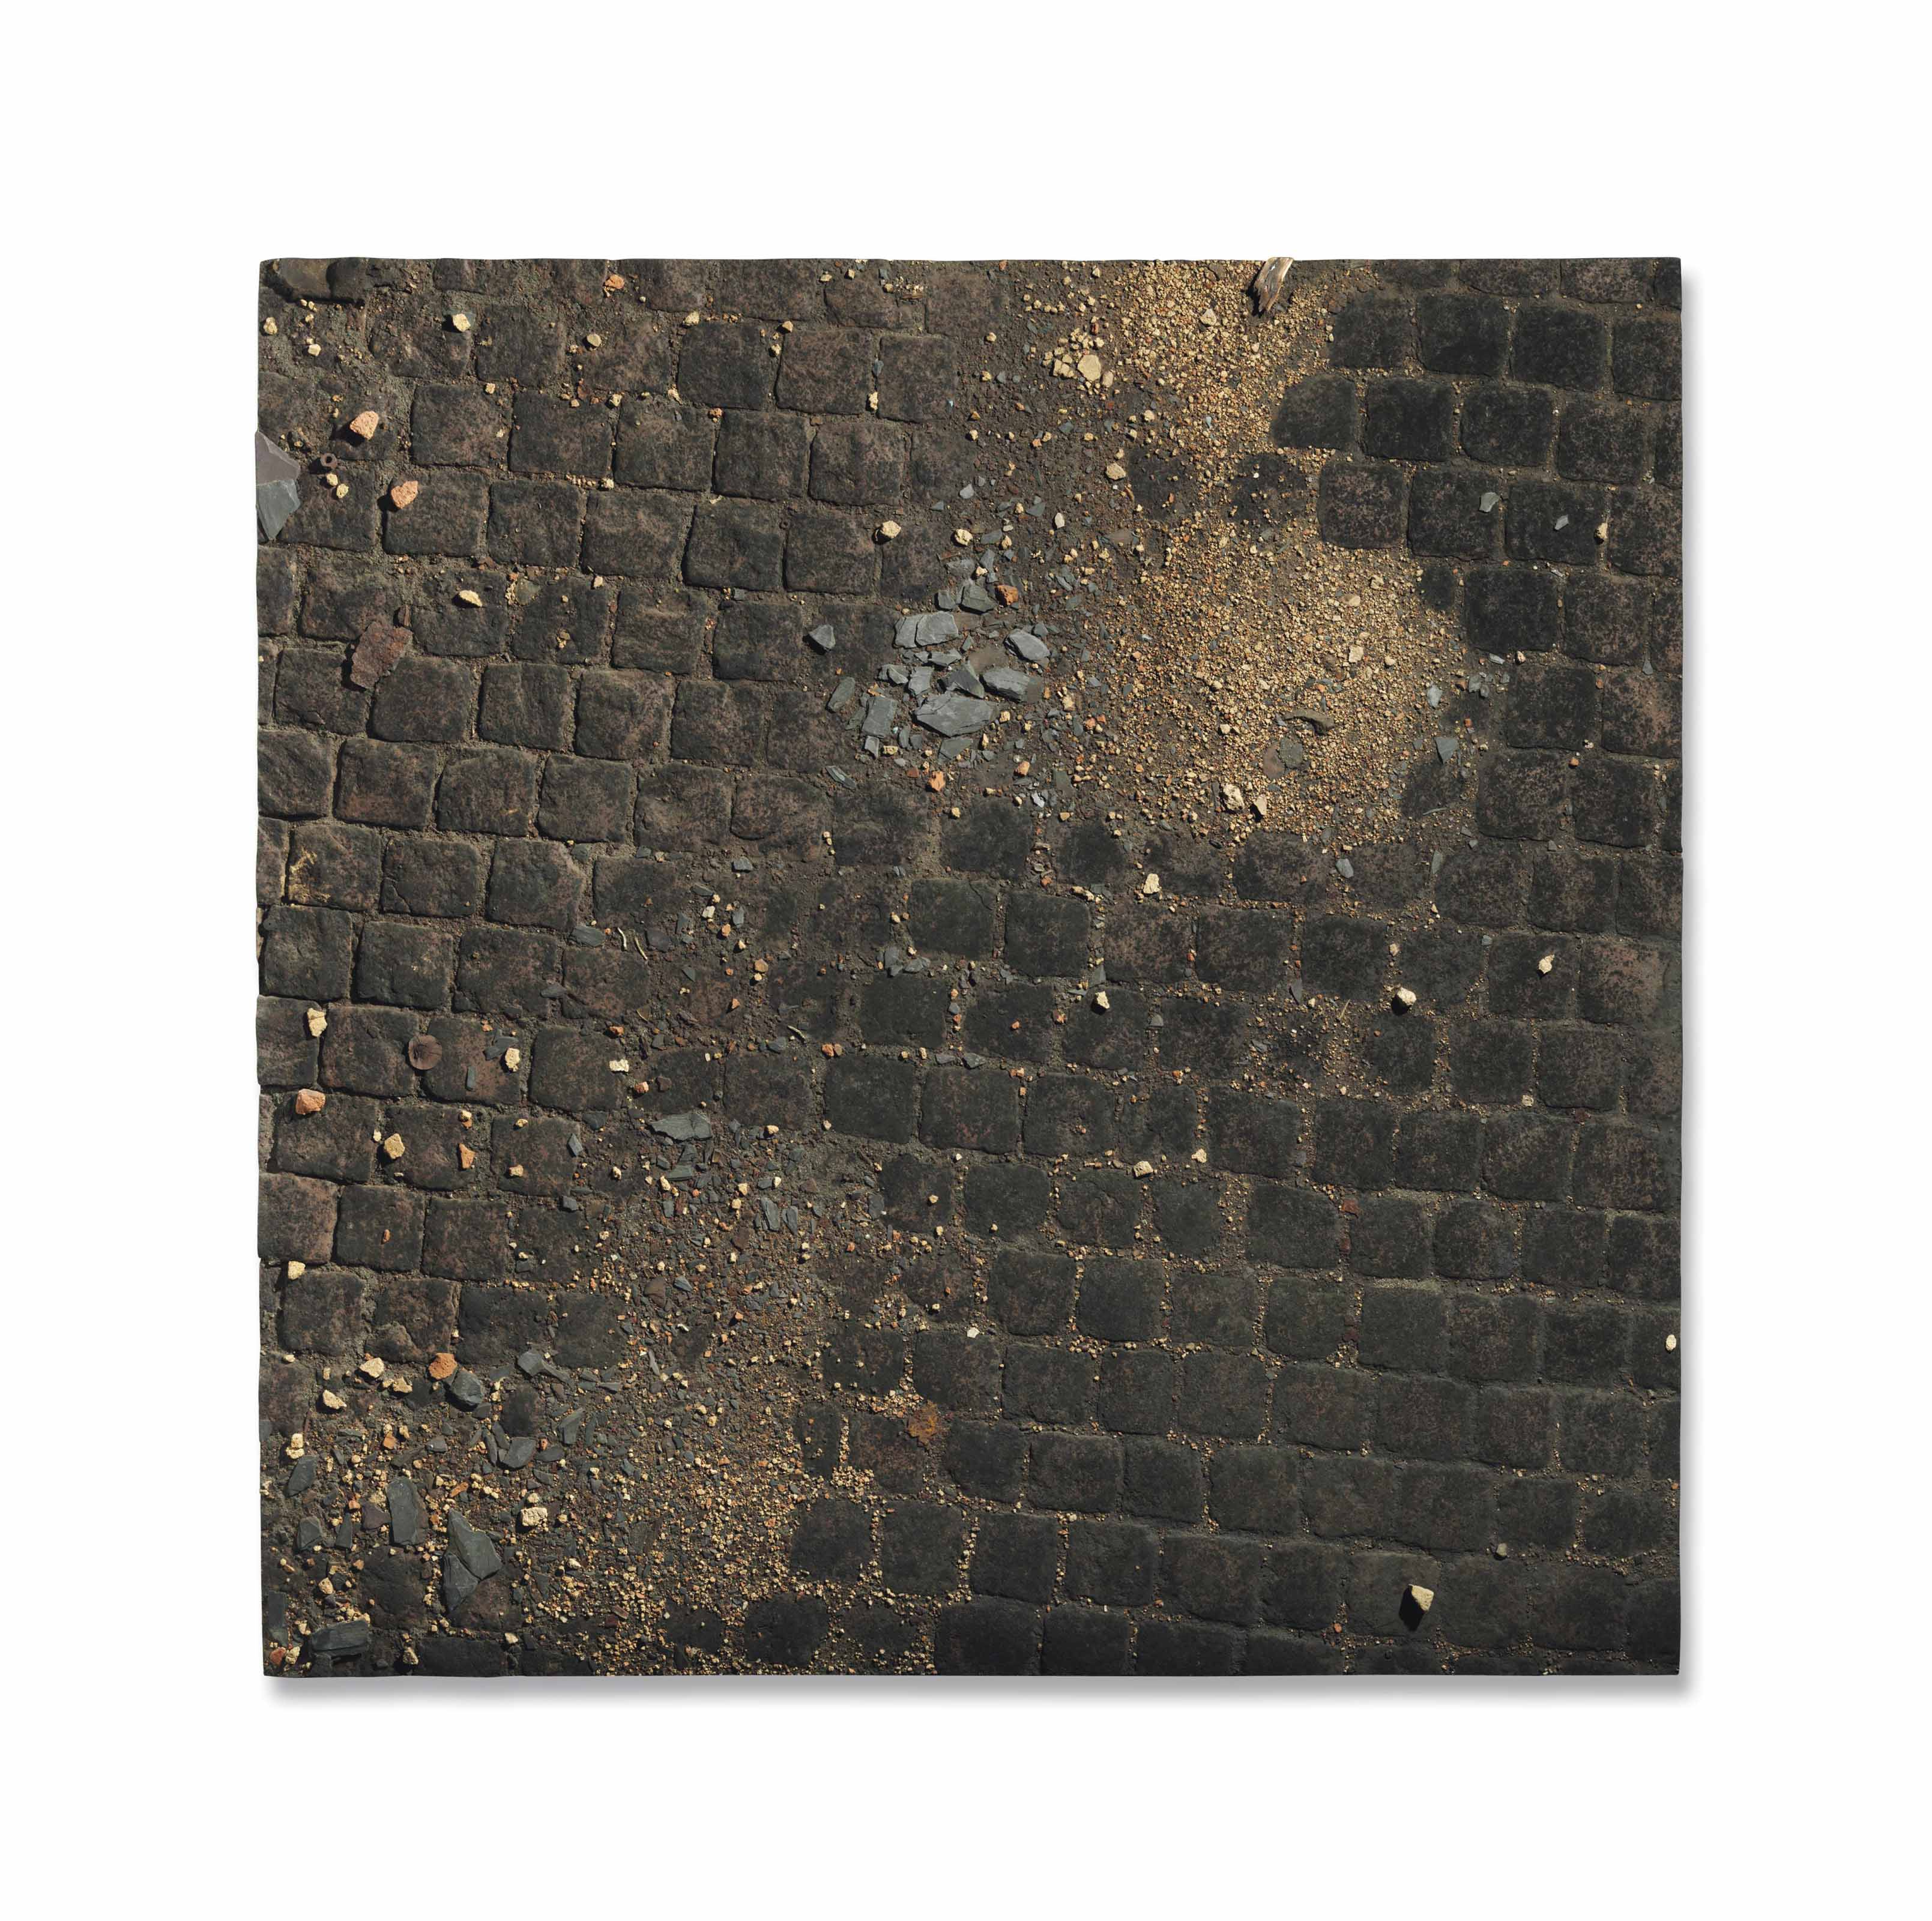 Red Causeway Series: Study of red cobbles and broken slate